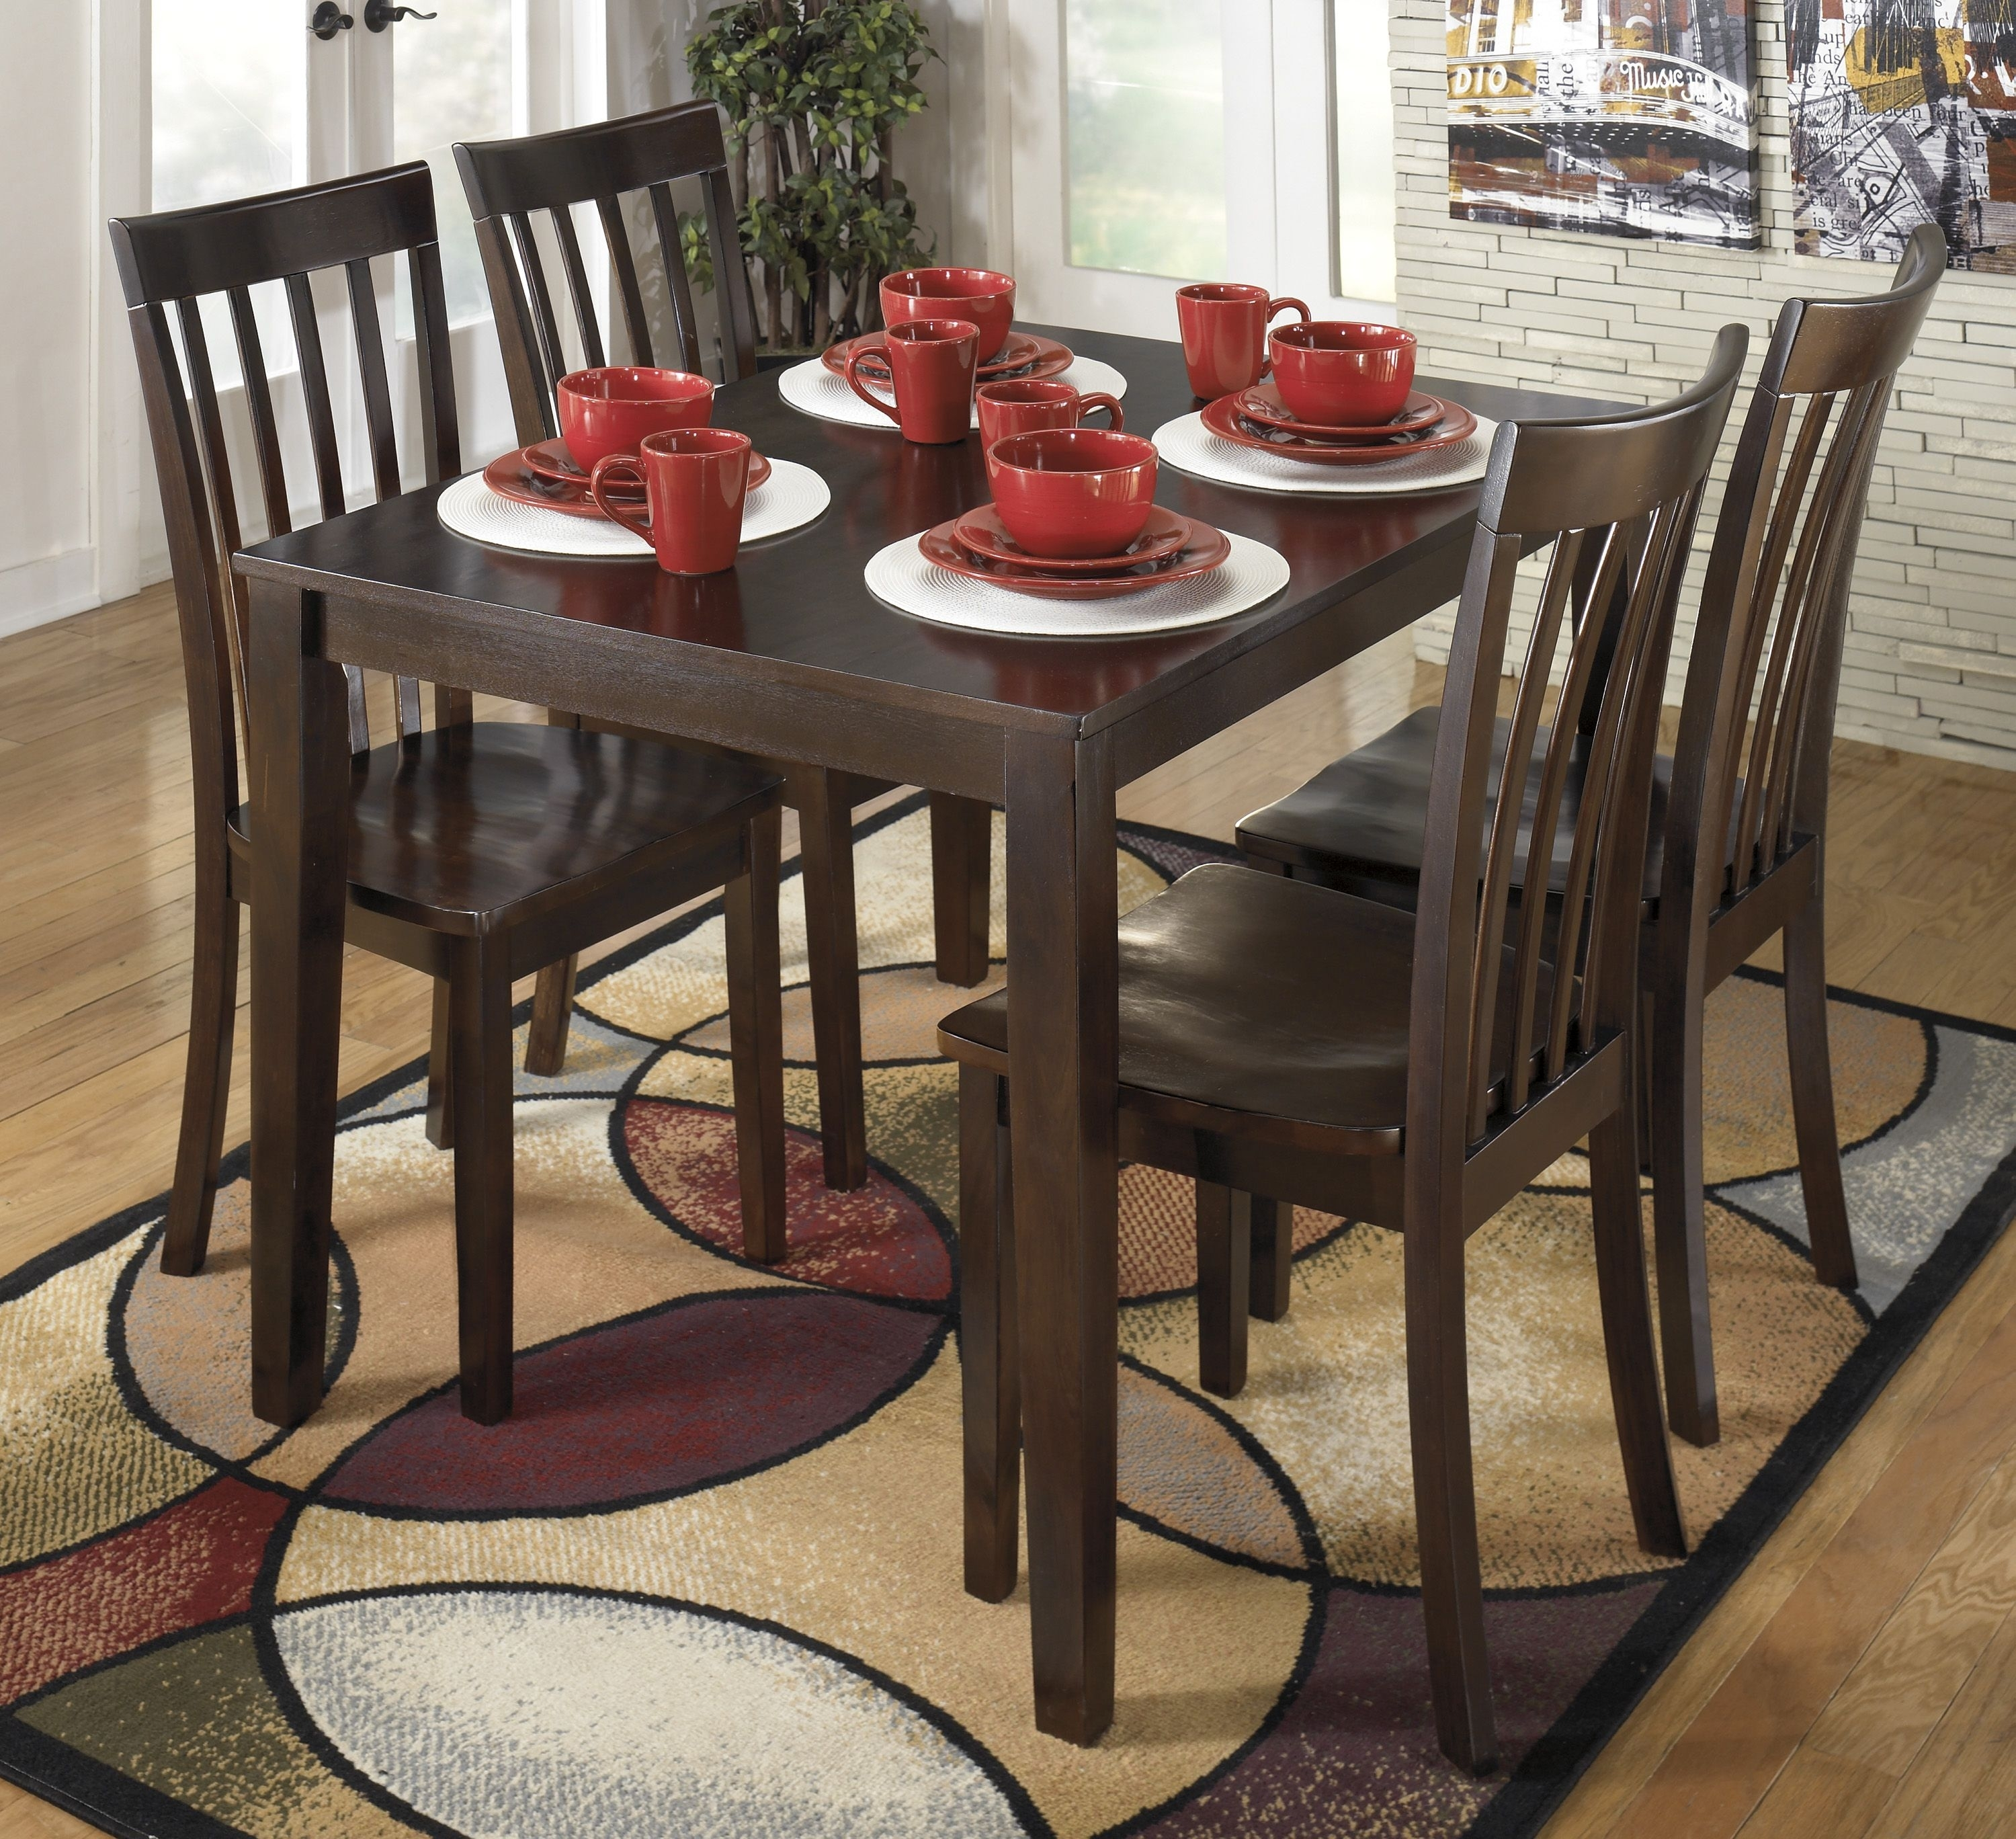 "The 'hyland' 36"" X 48"" Table & 4 Chairs 